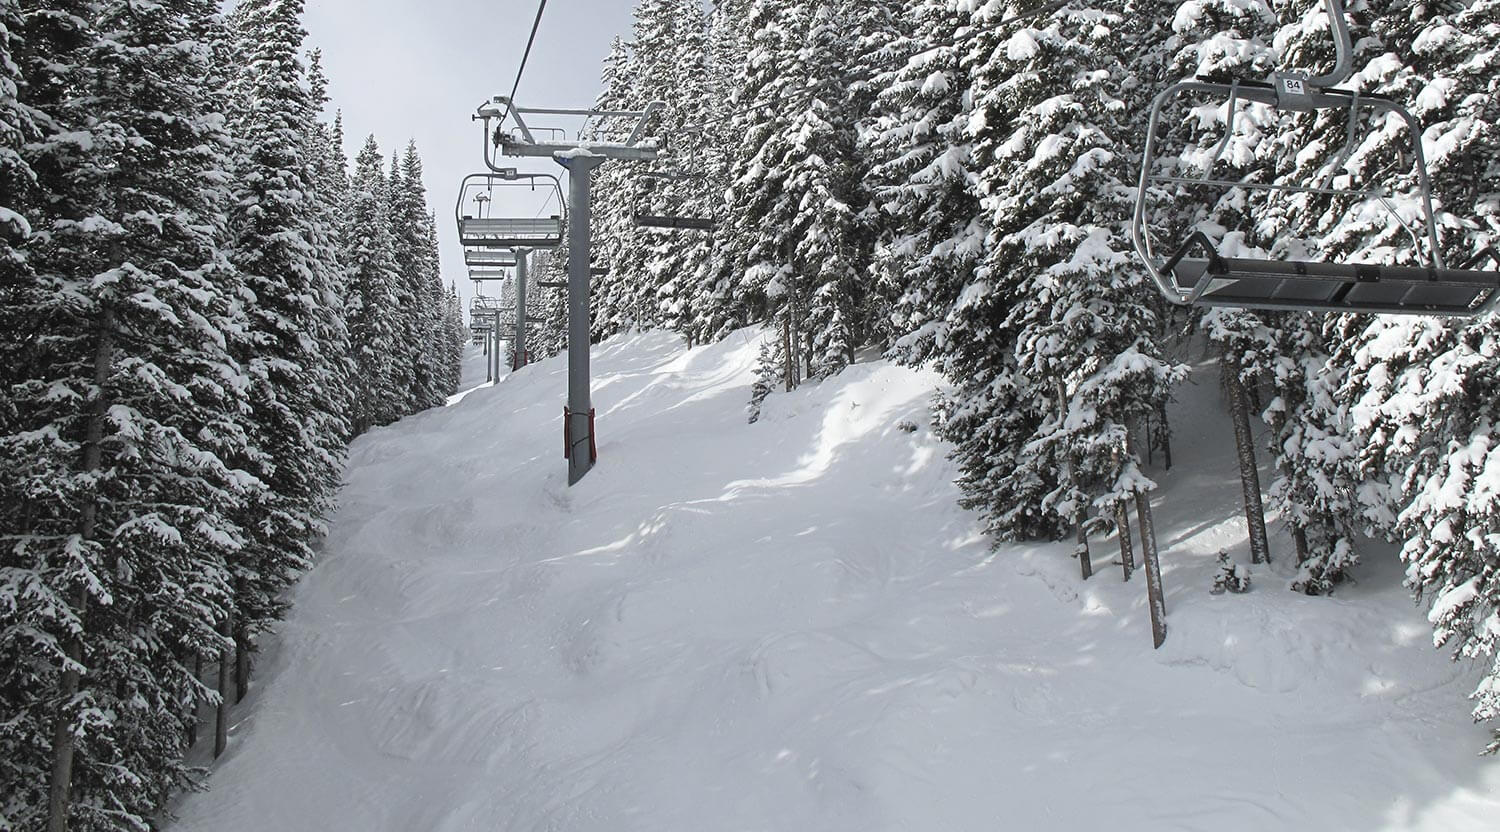 A ski lift in the midst of snowy evergreen trees in Vail